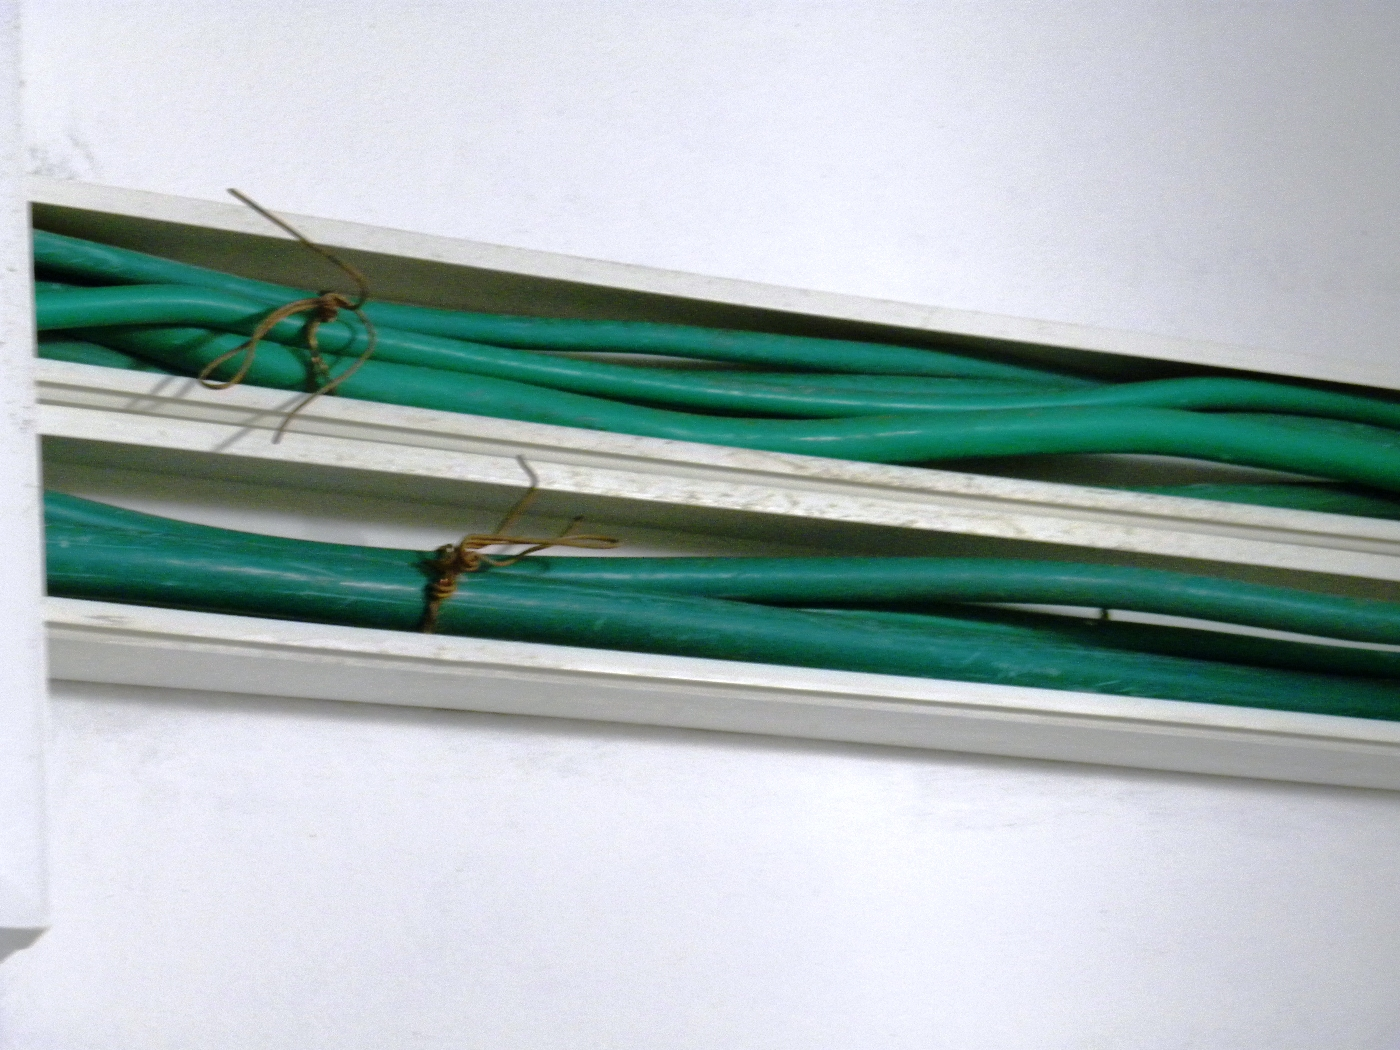 7 Common Electrical Wiring Mistakes Pro Construction Guide What Is In Mistake 3 Leaving Plastic Sheathed Cable Unprotected